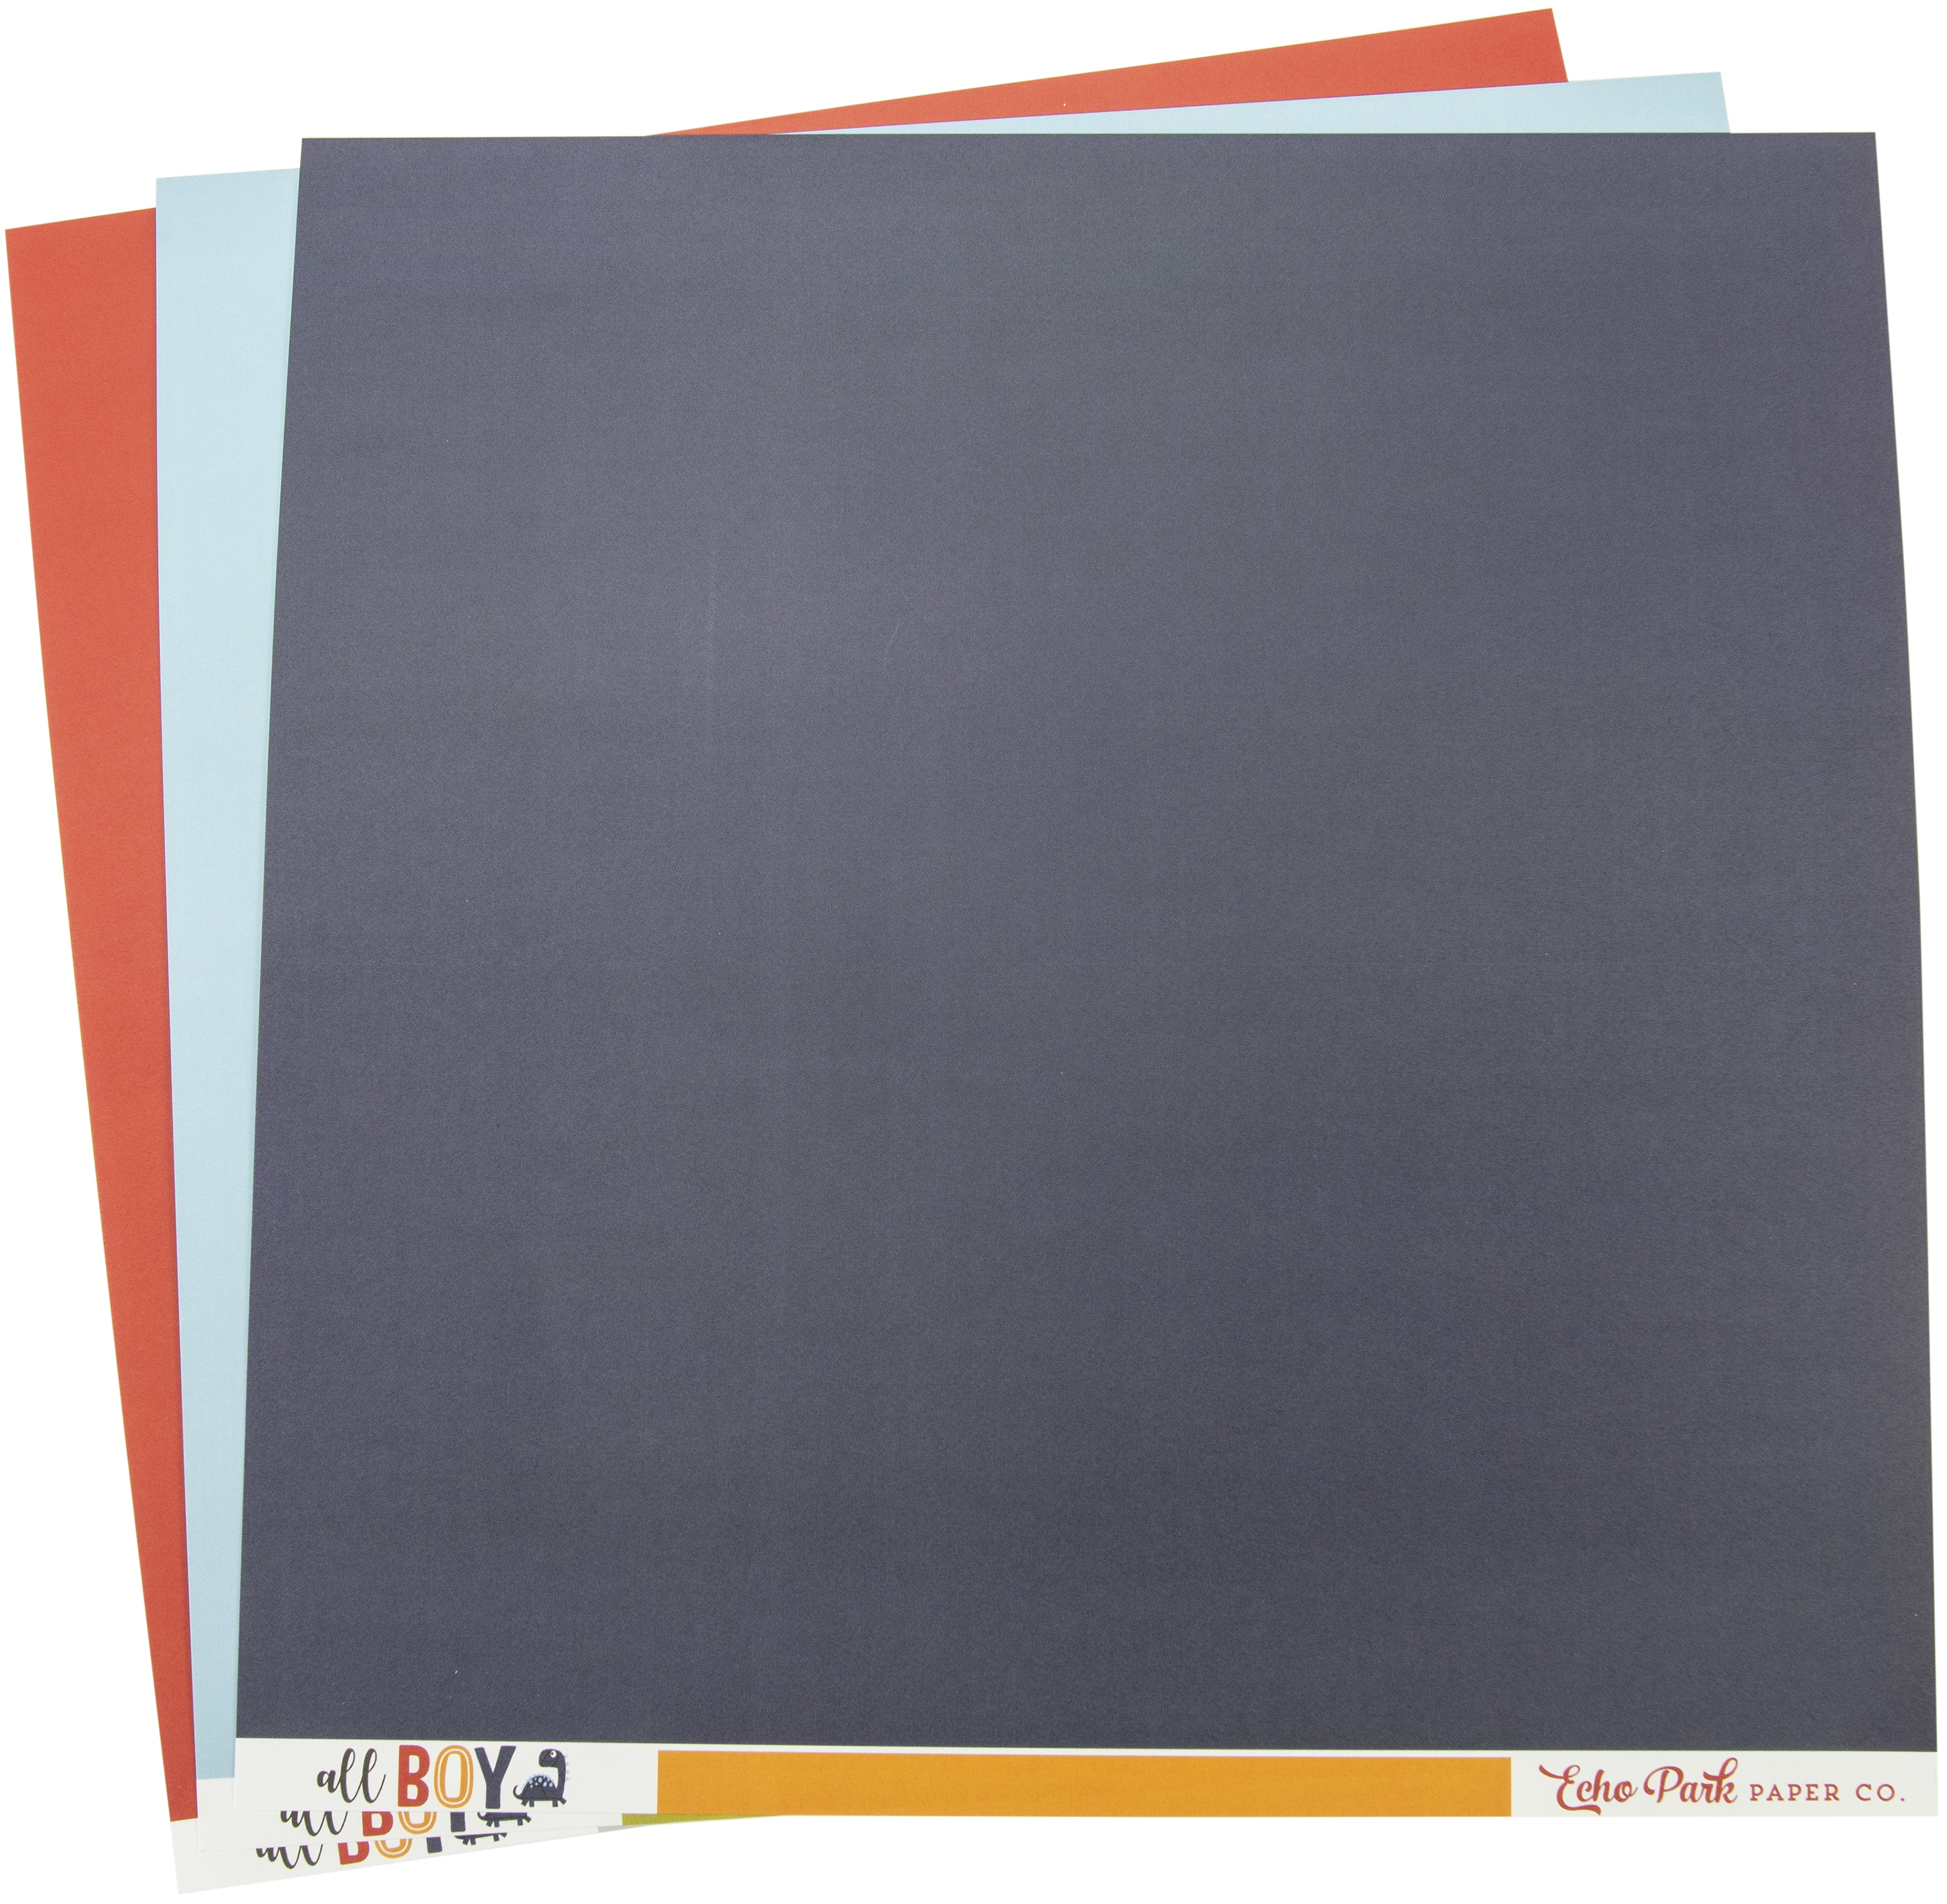 Echo Park Double-Sided Solid Cardstock 12X12 6/Pkg-All Boy, 6 Colors